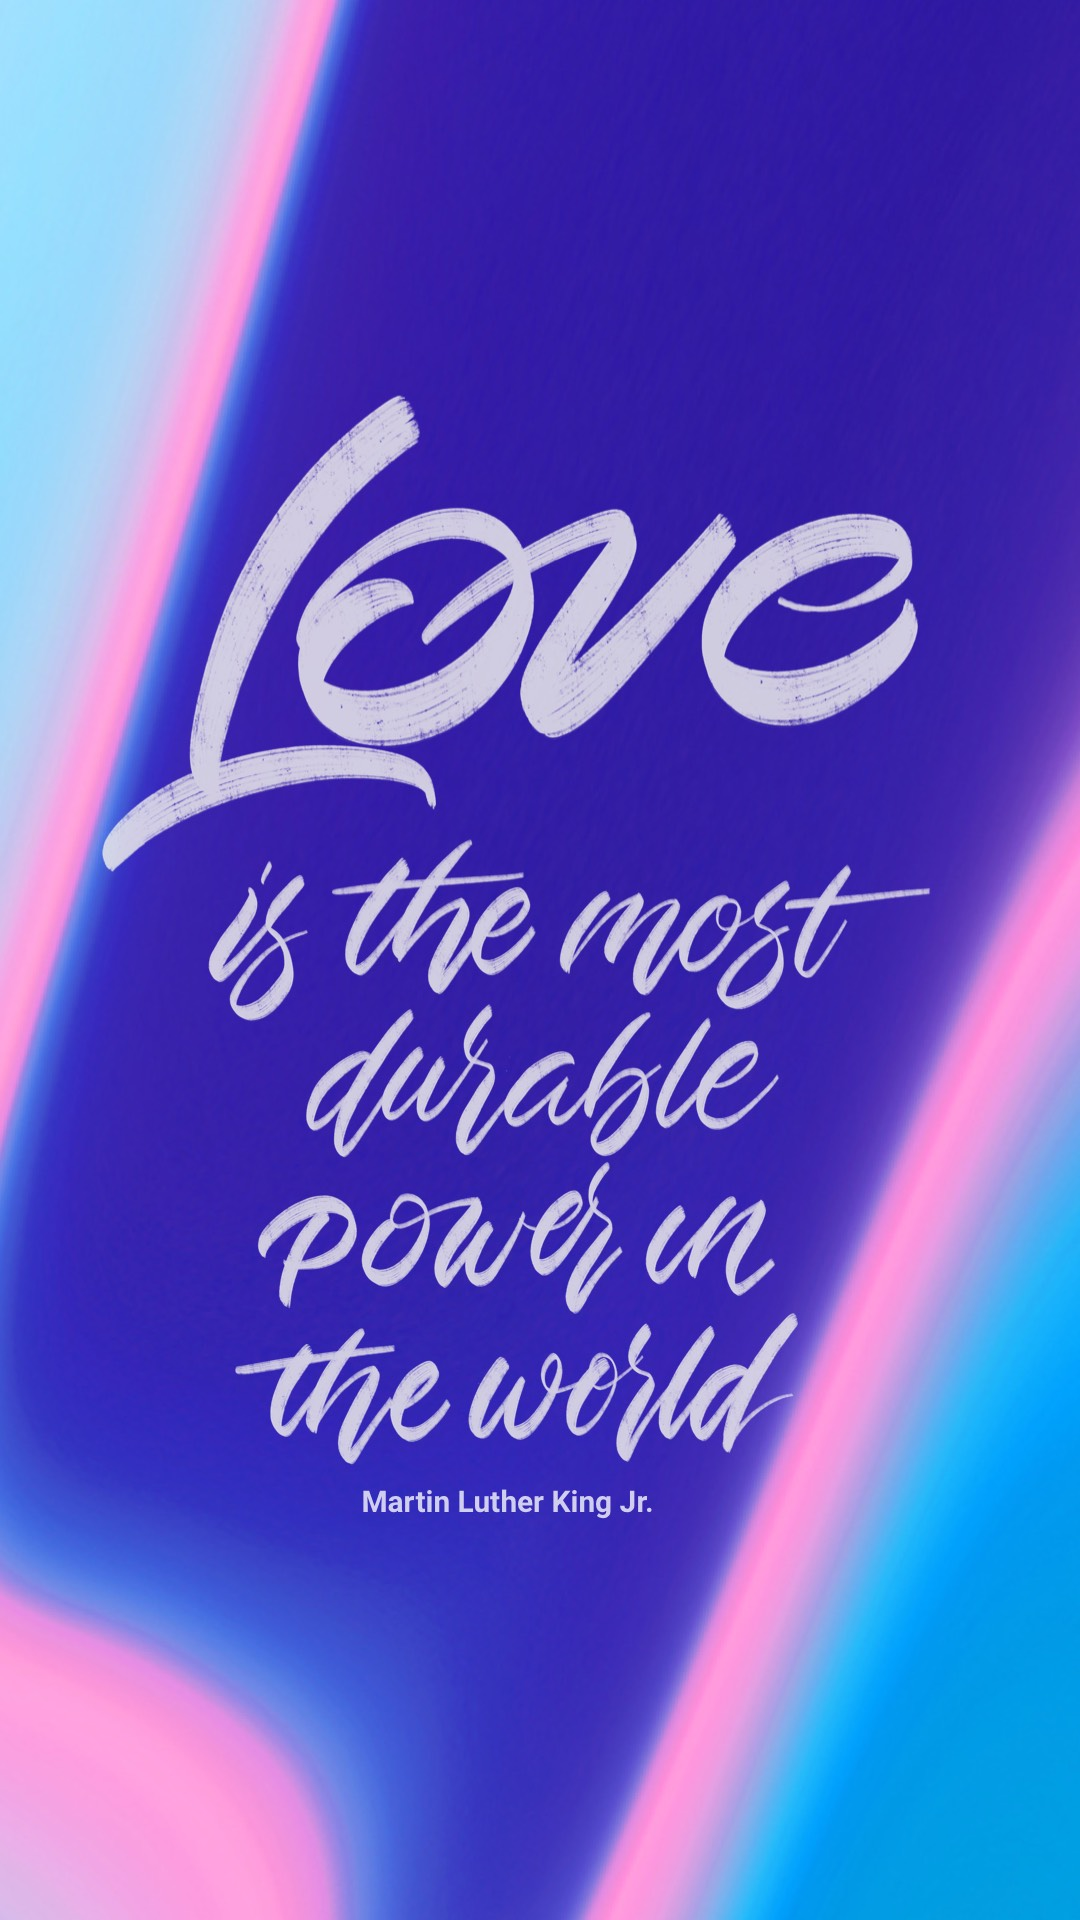 Love is the most durable power